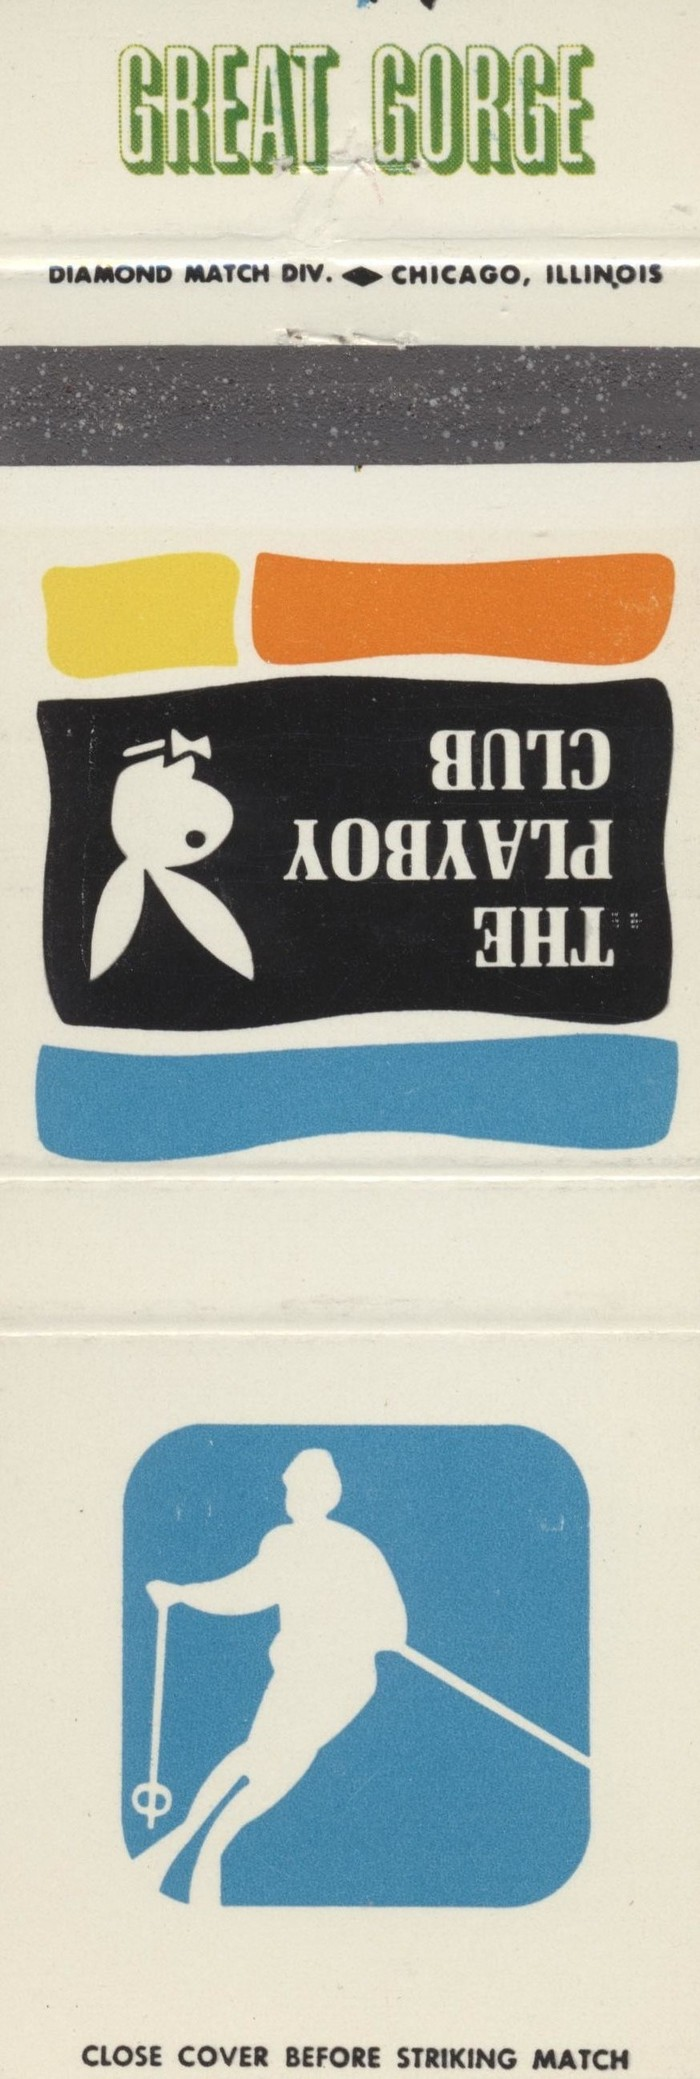 The Playboy Club city matchbook covers 9